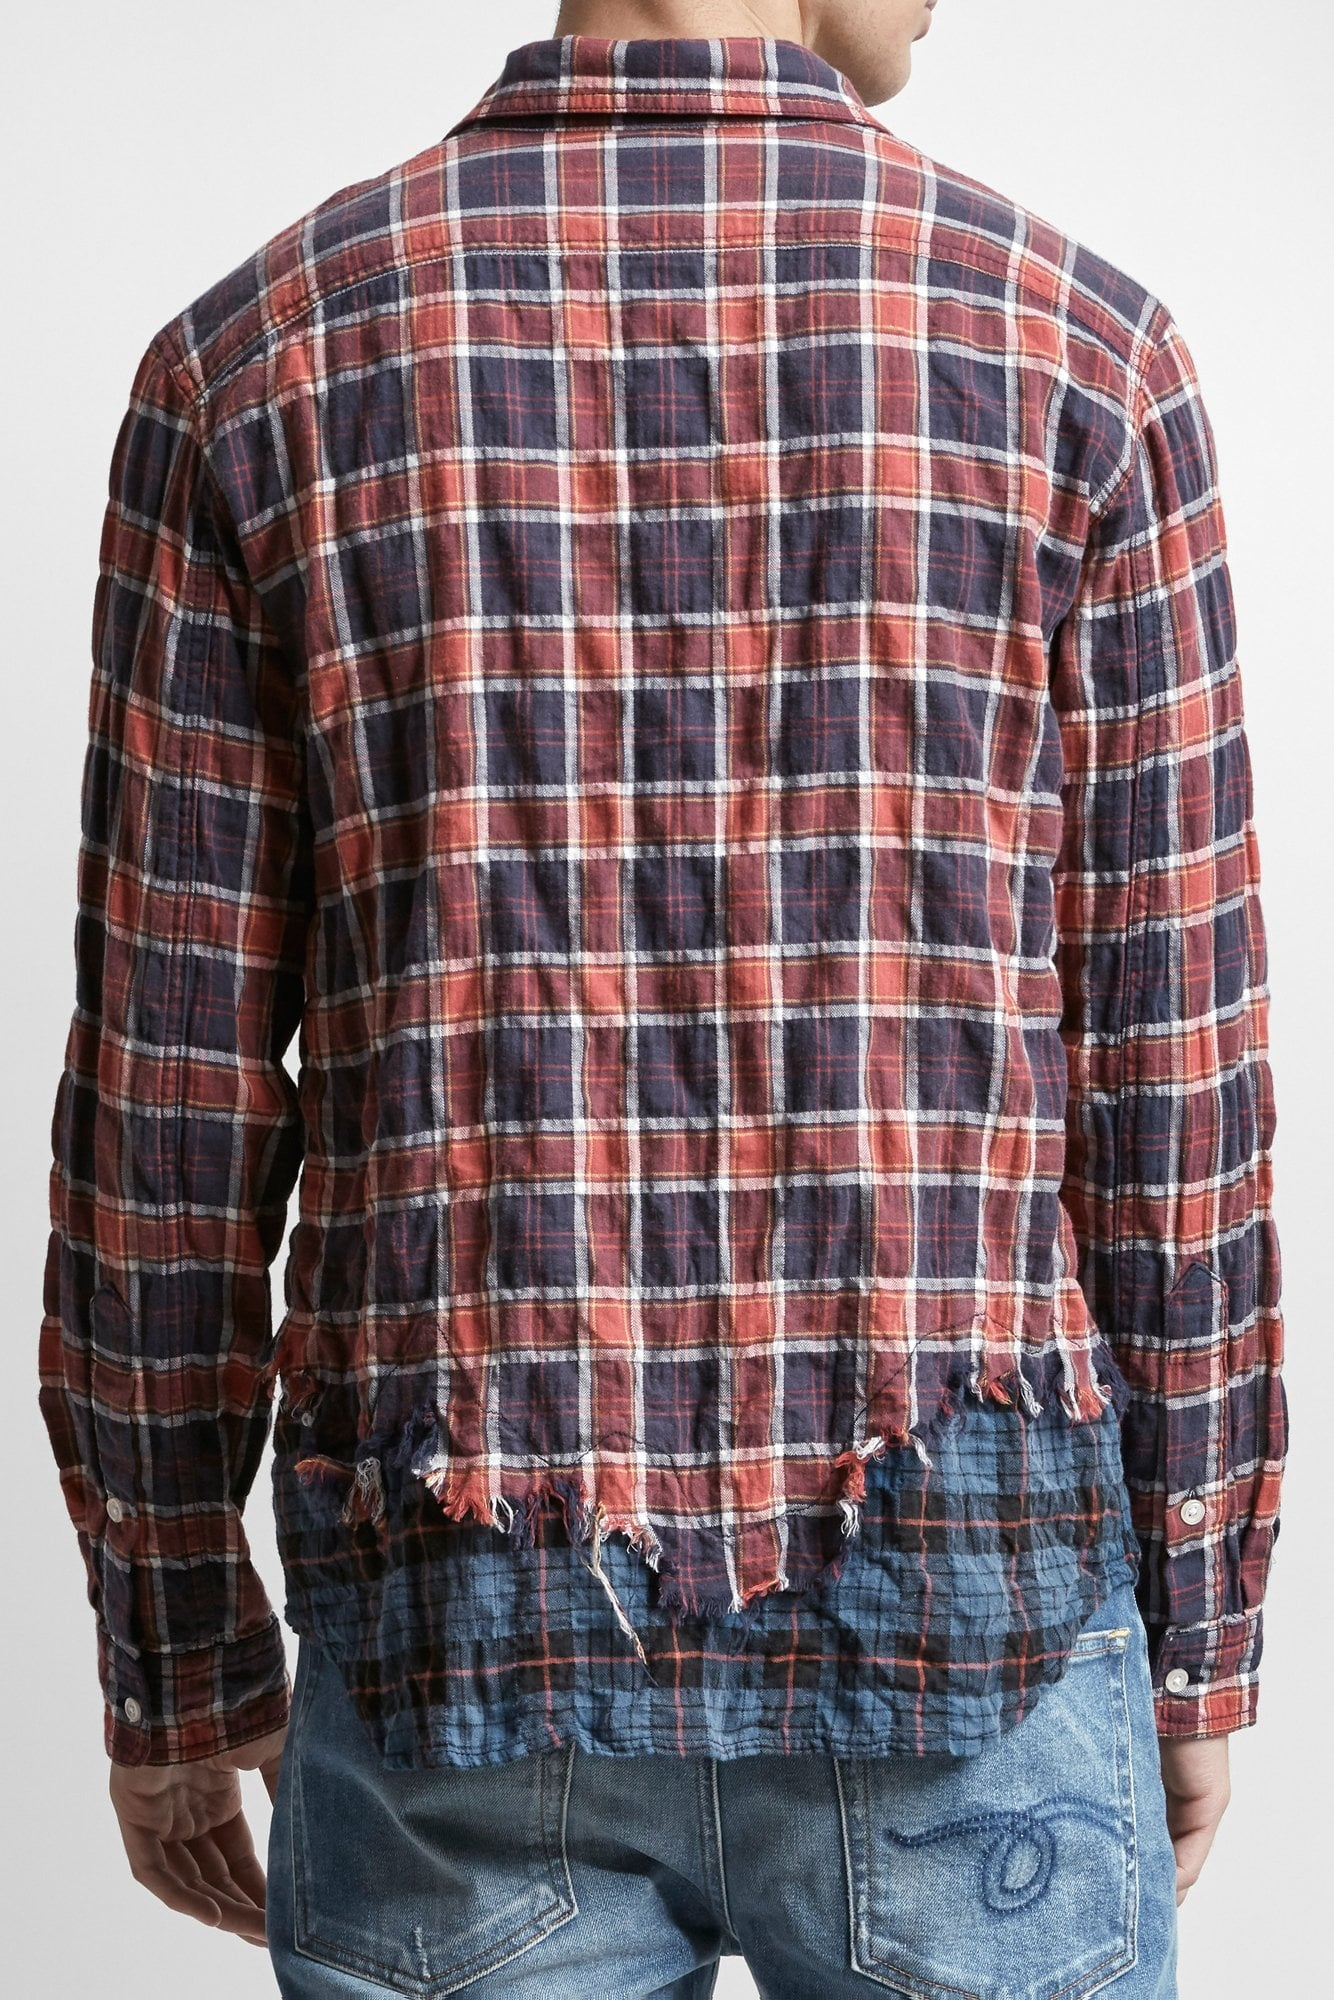 Tattered Hem Shirt